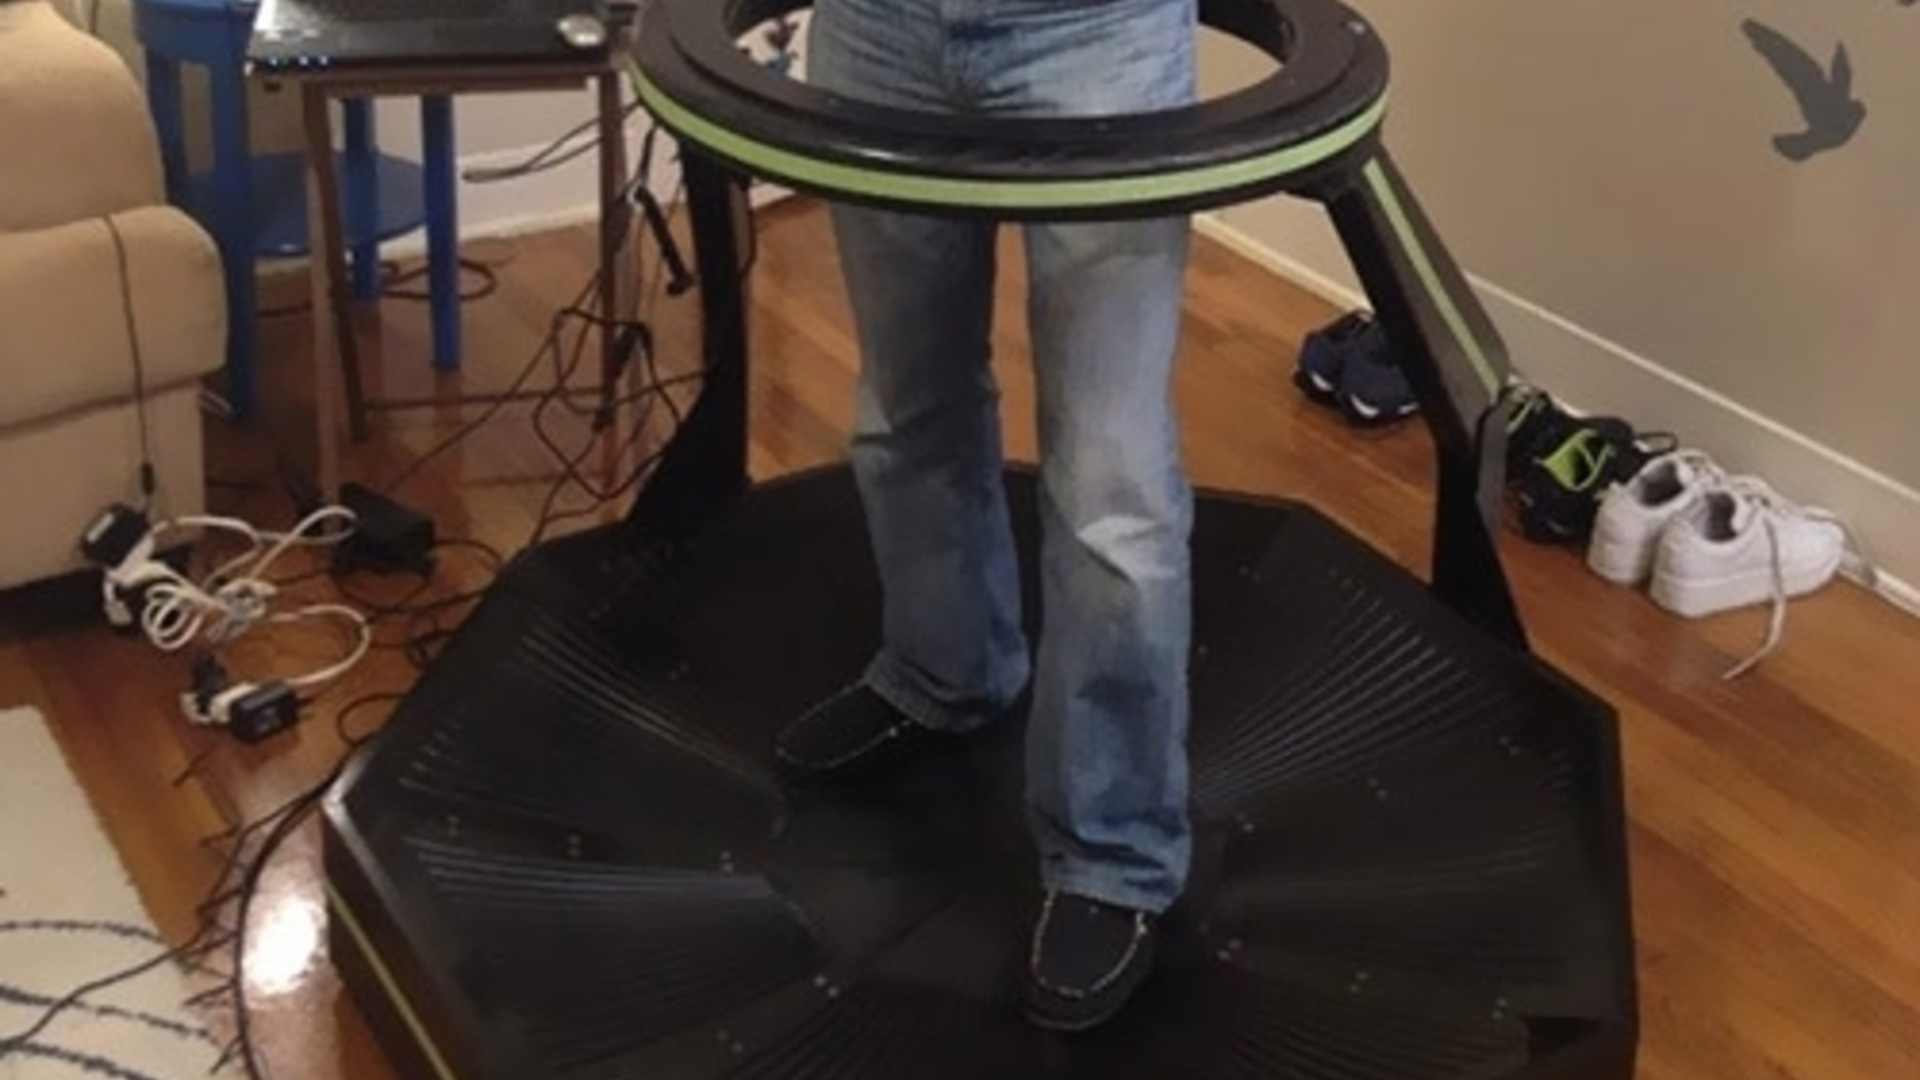 Omni treadmill: The future of VR goes in every direction